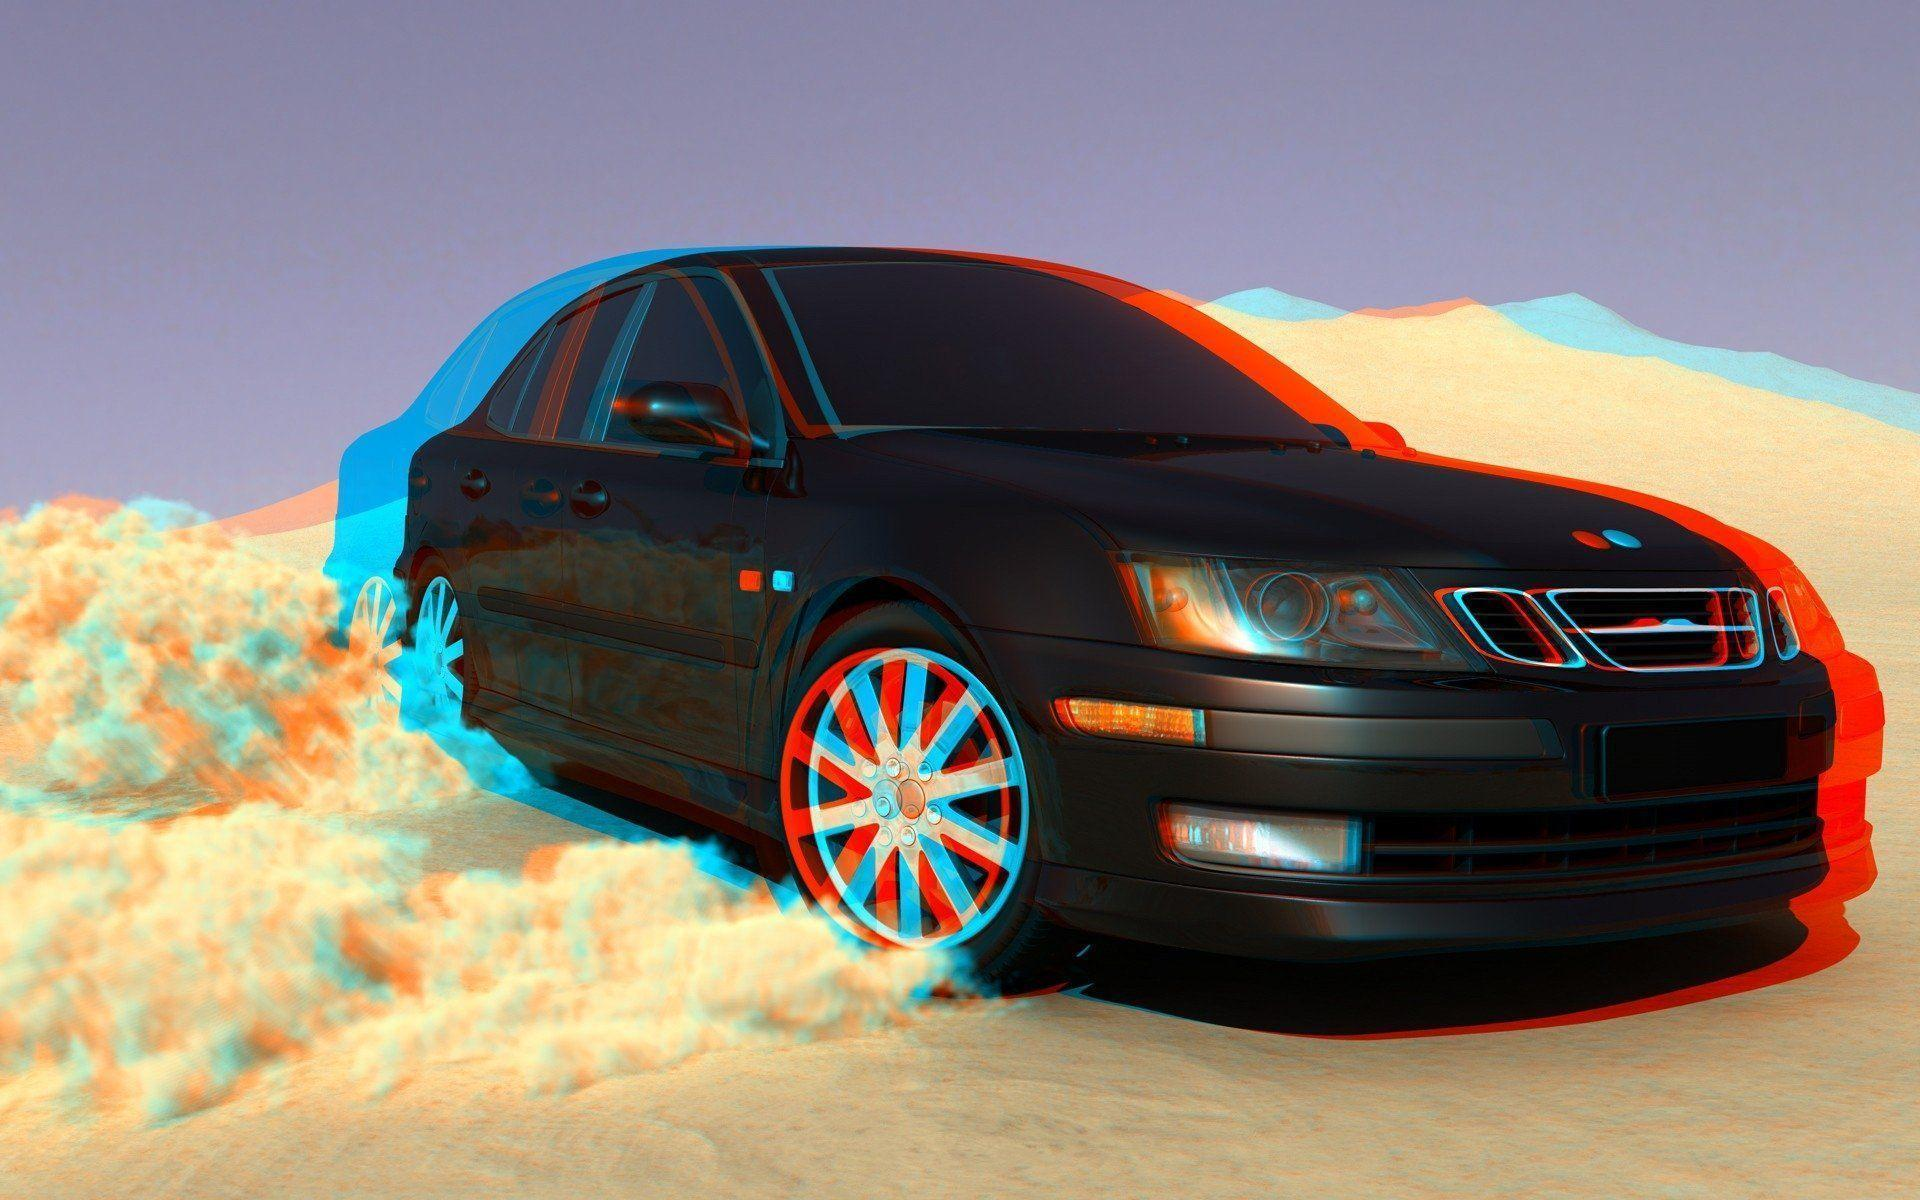 21 Saab HD Wallpapers | Backgrounds - Wallpaper Abyss